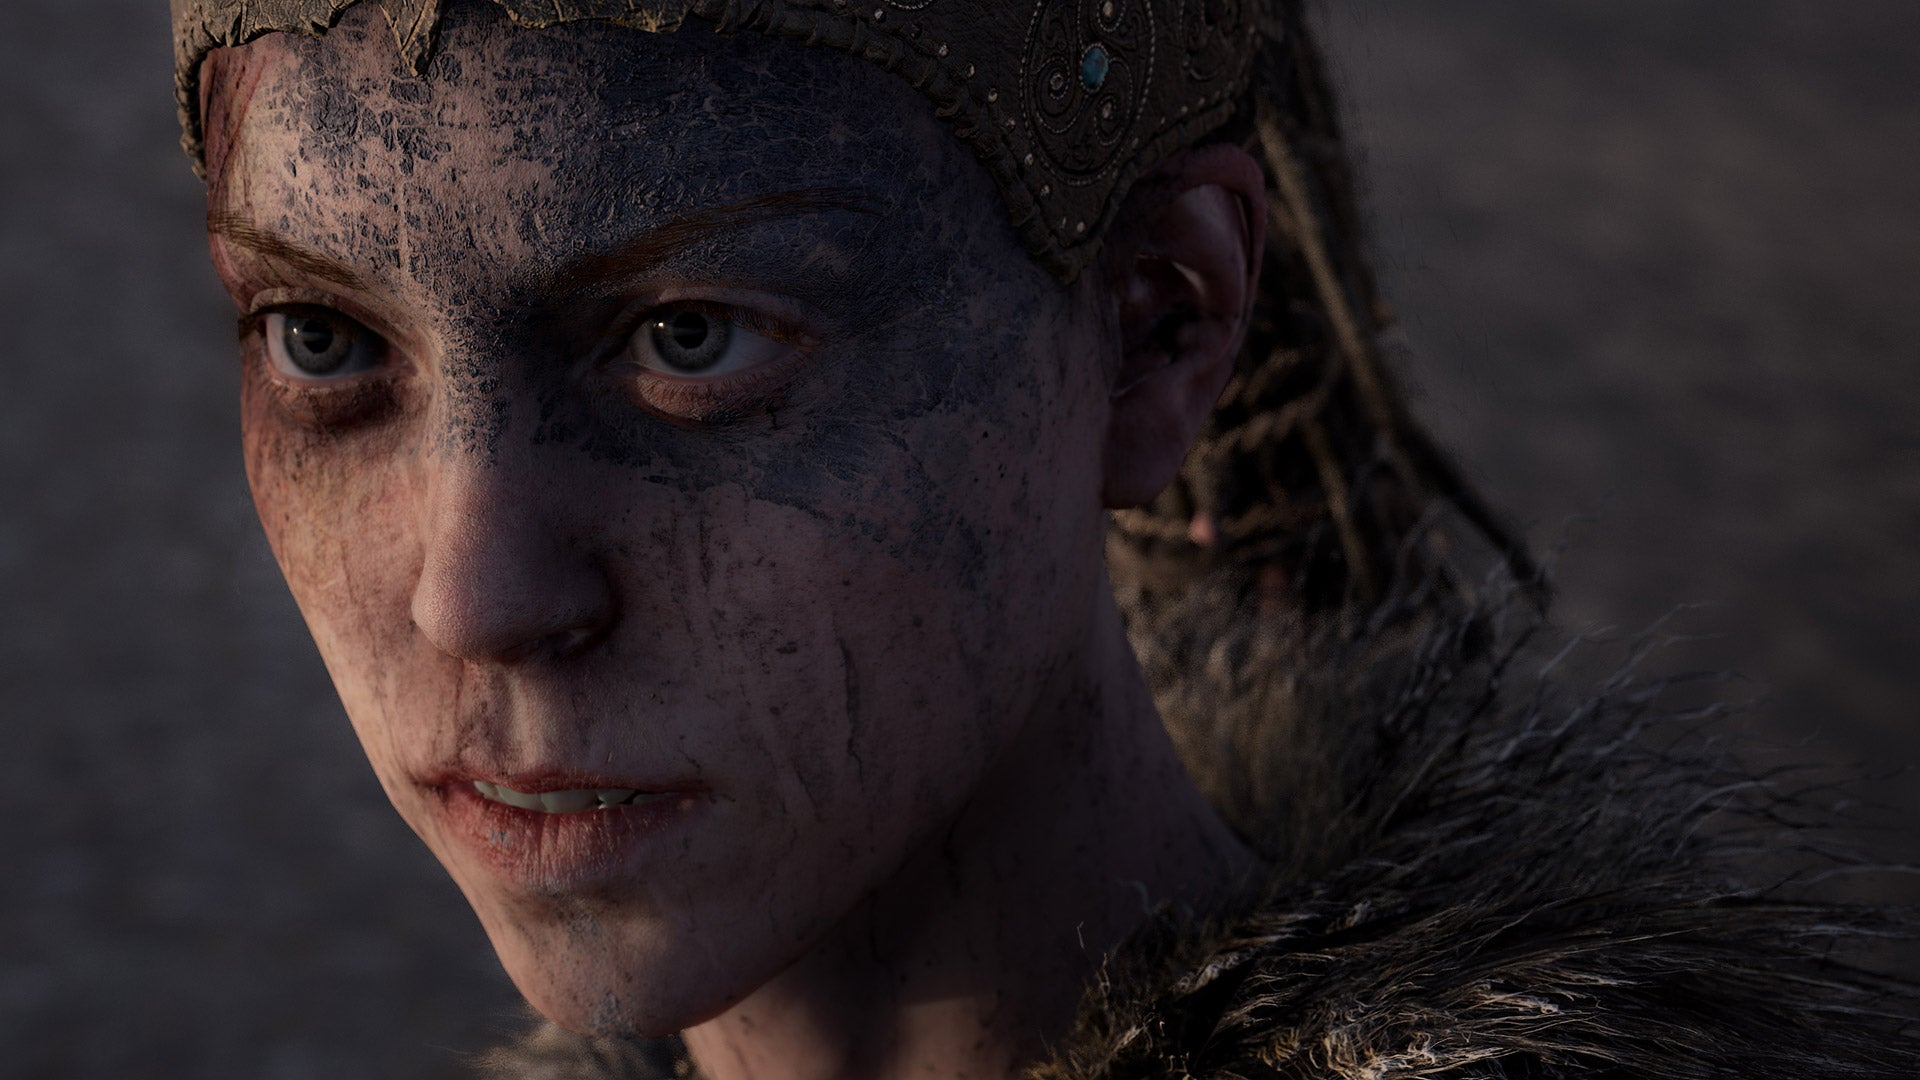 hellblade 1621905930962.jpeg?width=640&fit=bounds&height=480&quality=20&dpr=0